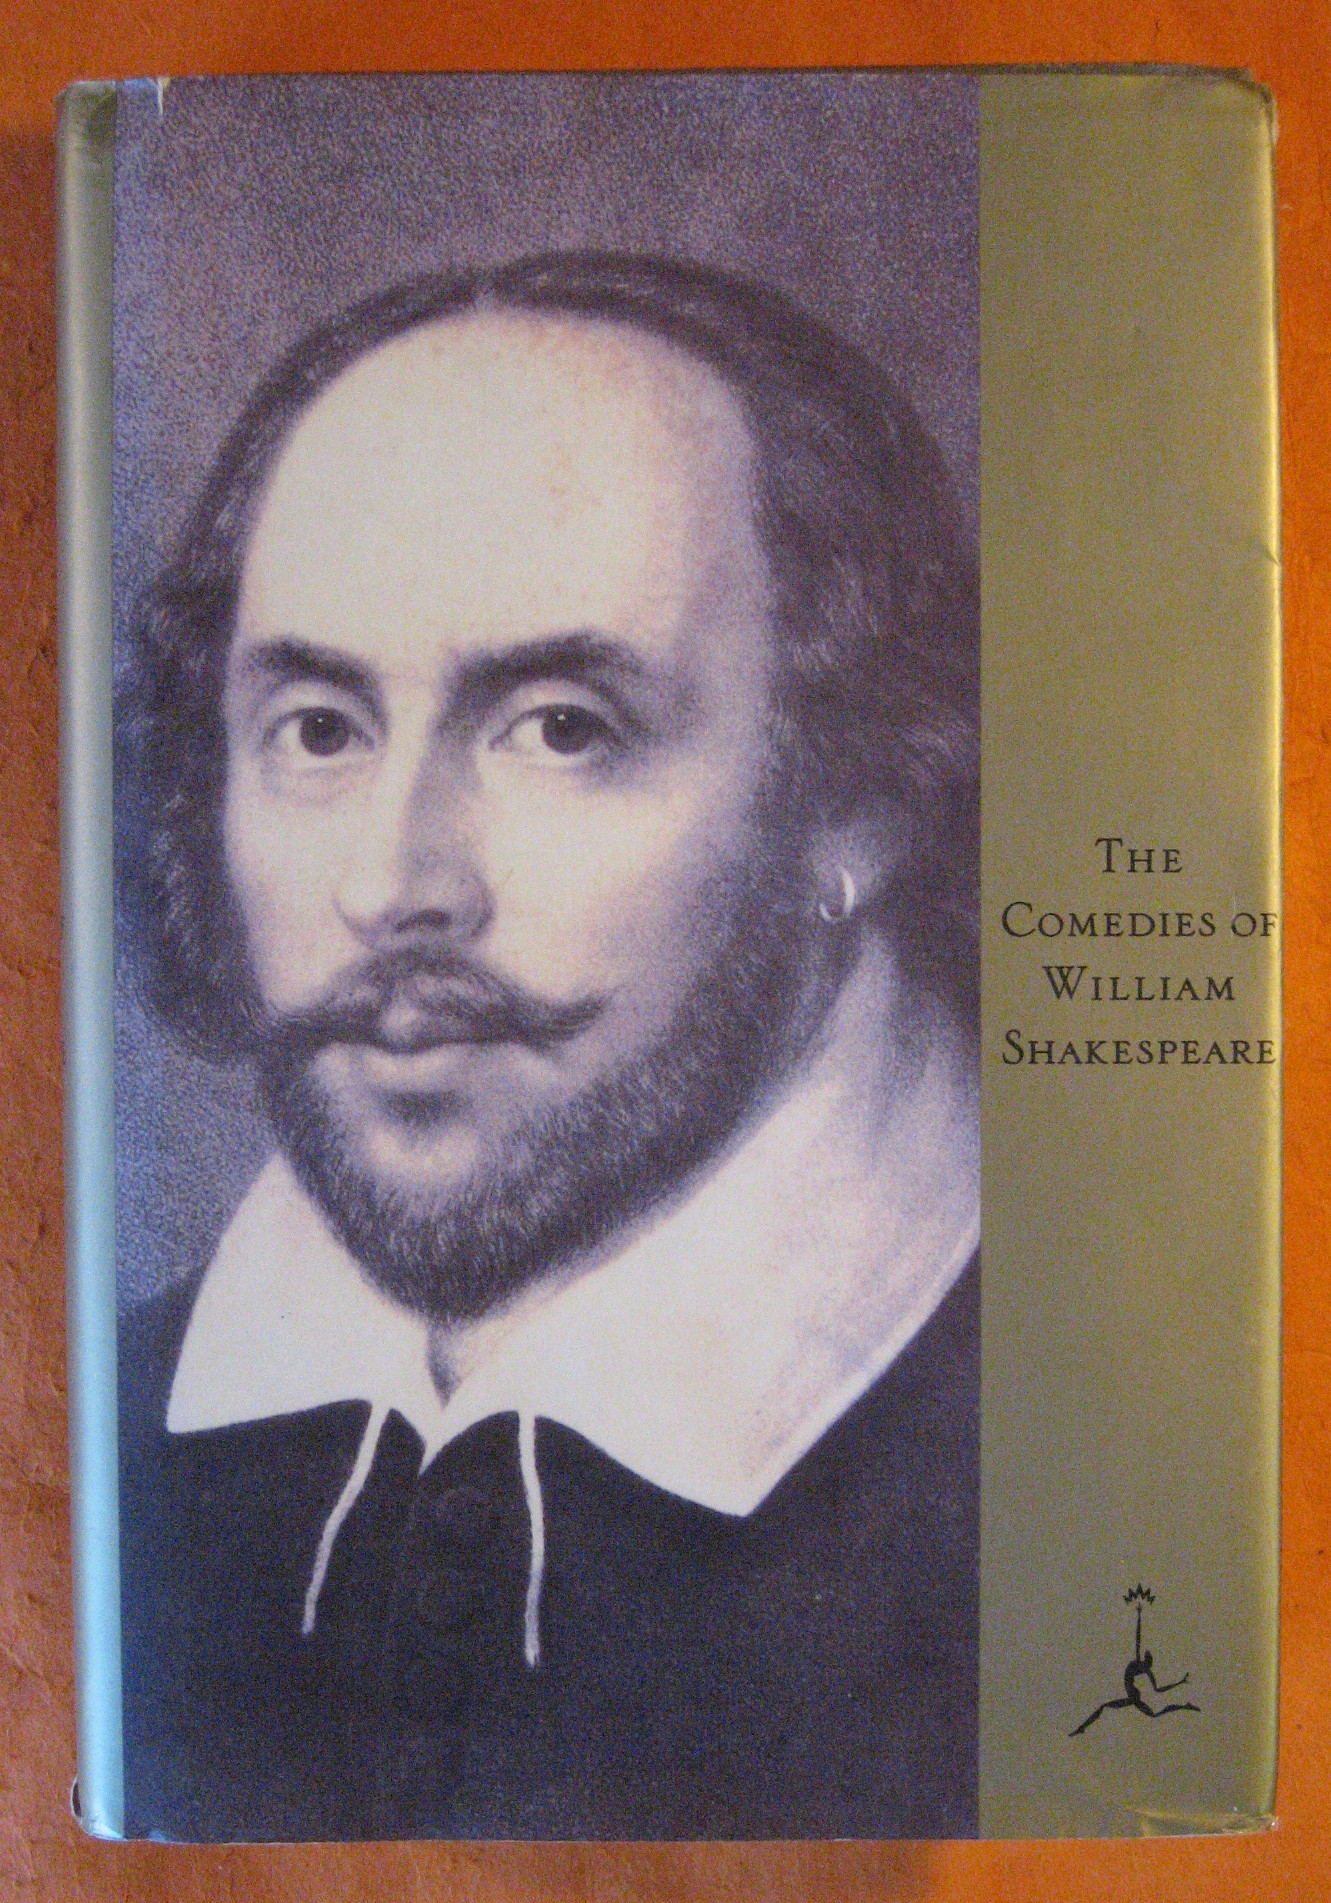 The Comedies of William Shakespeare, Shakespeare, William